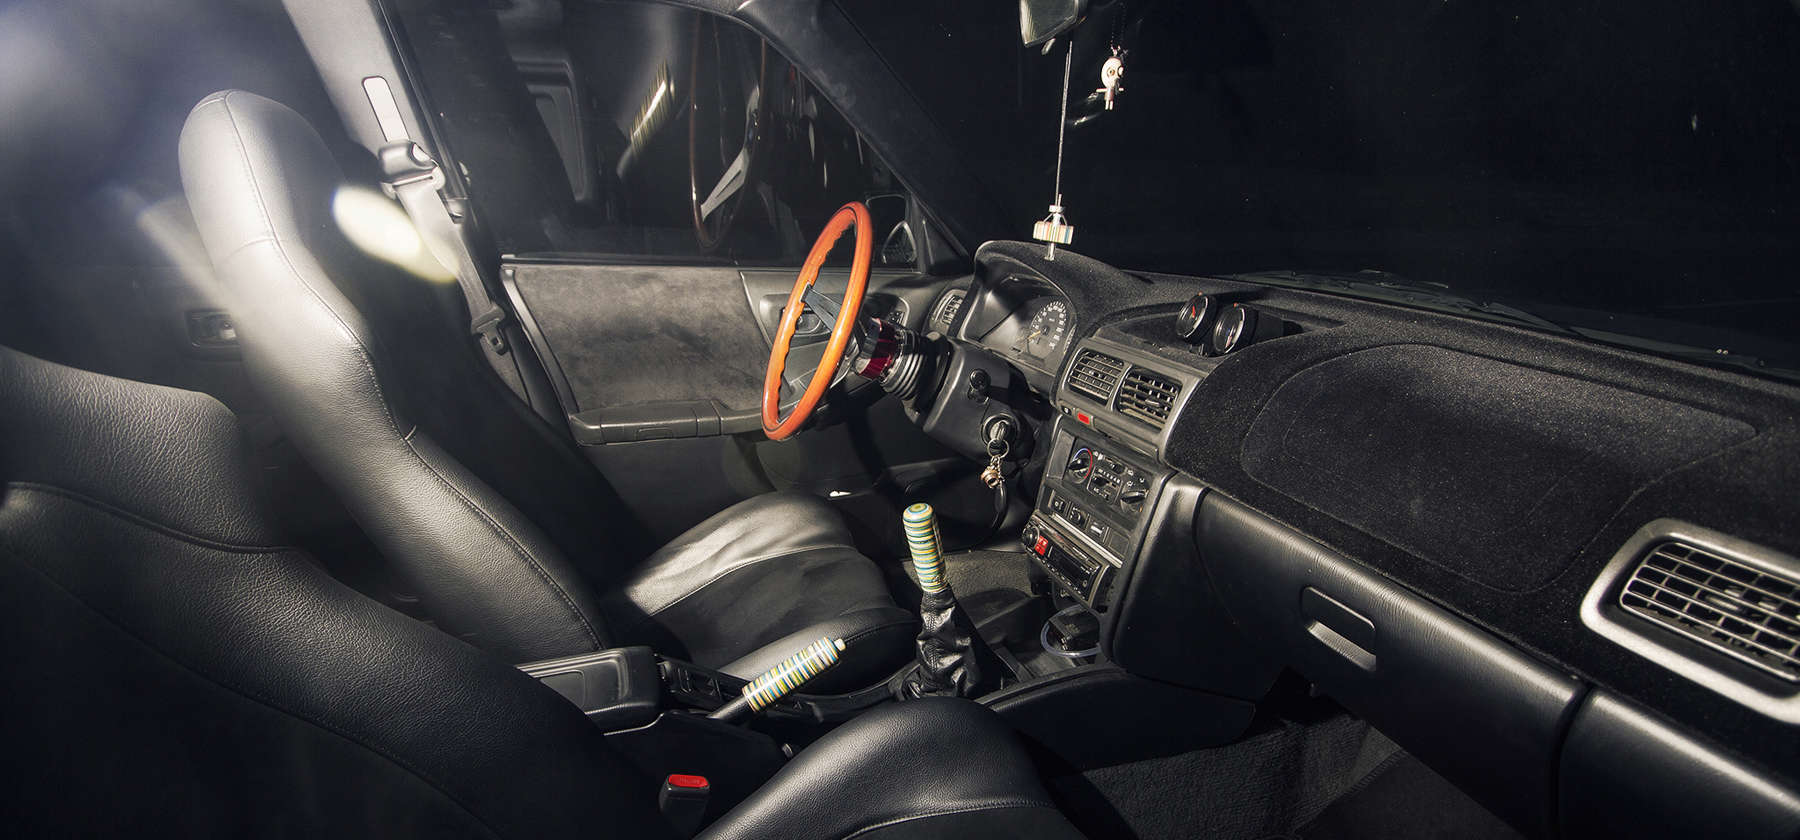 Subaru shift knob & handbrake